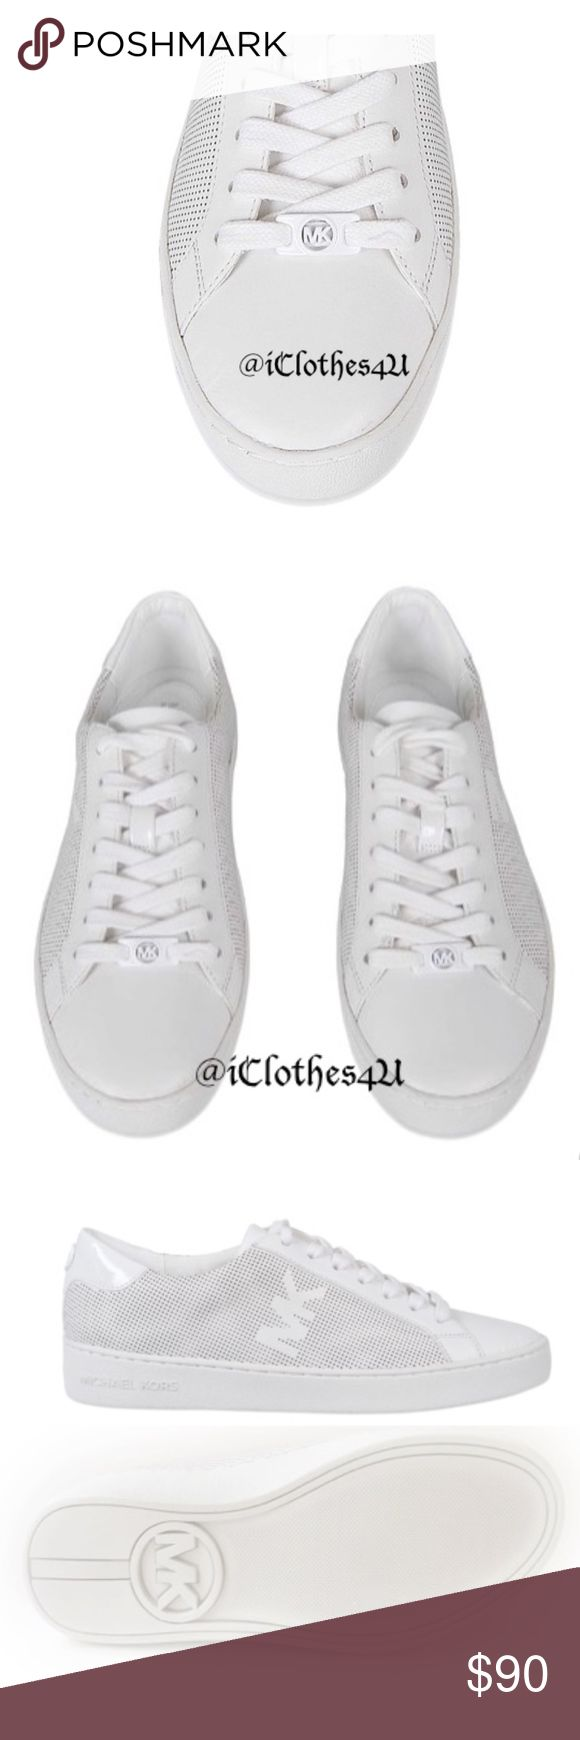 Michael Kors Classic Lace Up Leather Sneakers Michael Kors Lace Up Leather Sneakers are classic white sneakers with a round toe and perforated design to give it a contemporary urban feel.  These lace ups are 100% leather with a 100% Cotton lining and rubber outsole.  MK Logo on side, heel, bottom and woven in front through the lace will shine in these Optic White shoe. New with no box. Michael Kors Shoes Sneakers